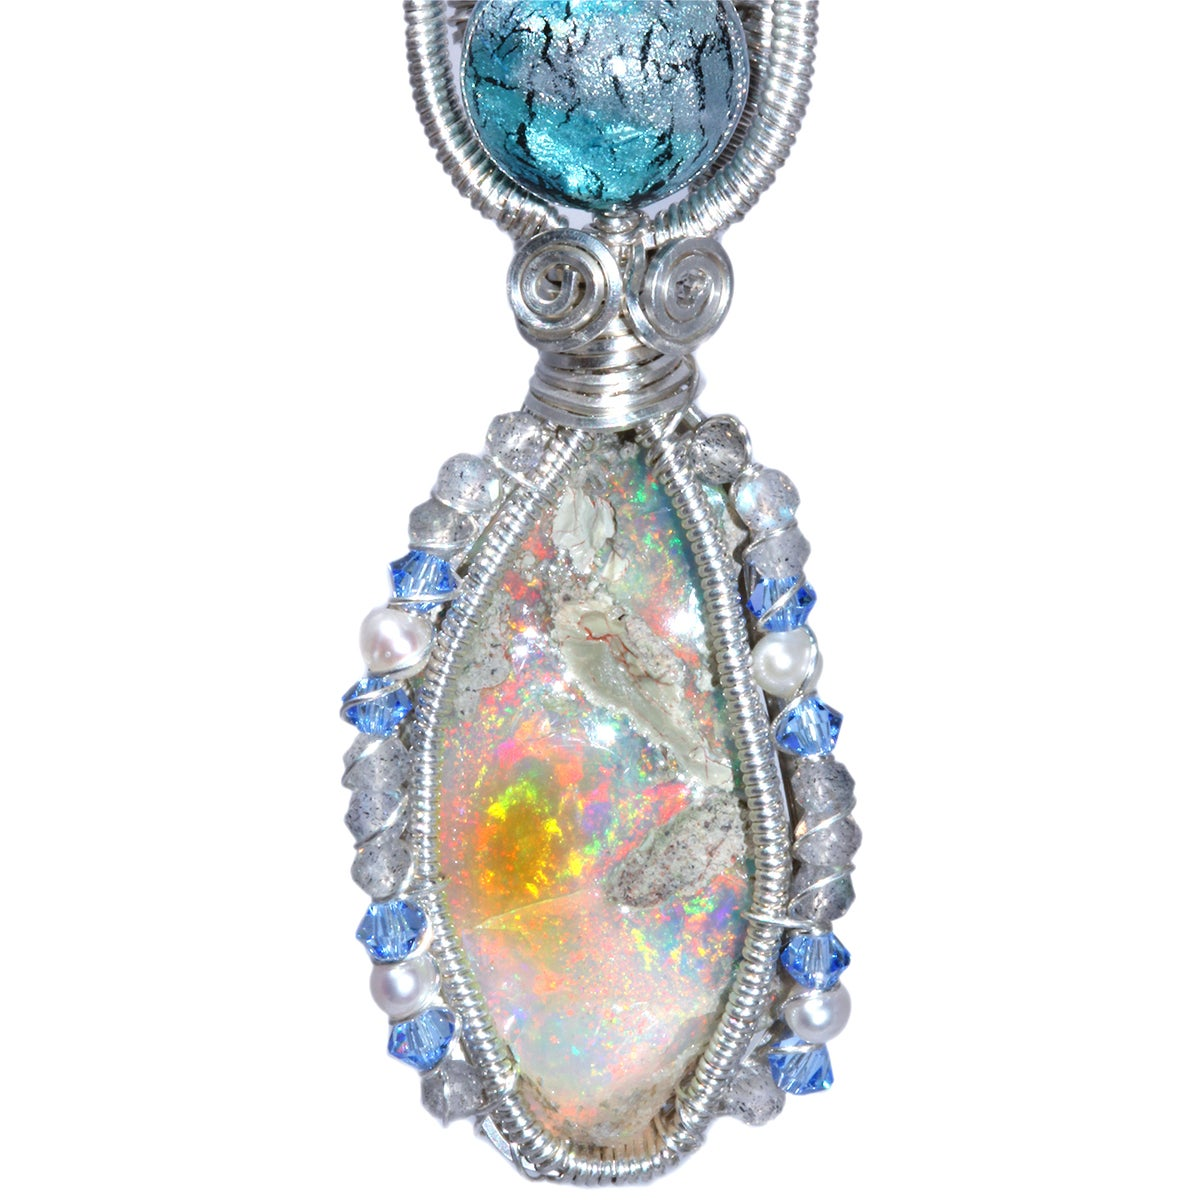 Ethiopian Opal Handmade Pendant with Labradorite and Venetian Glass Bead